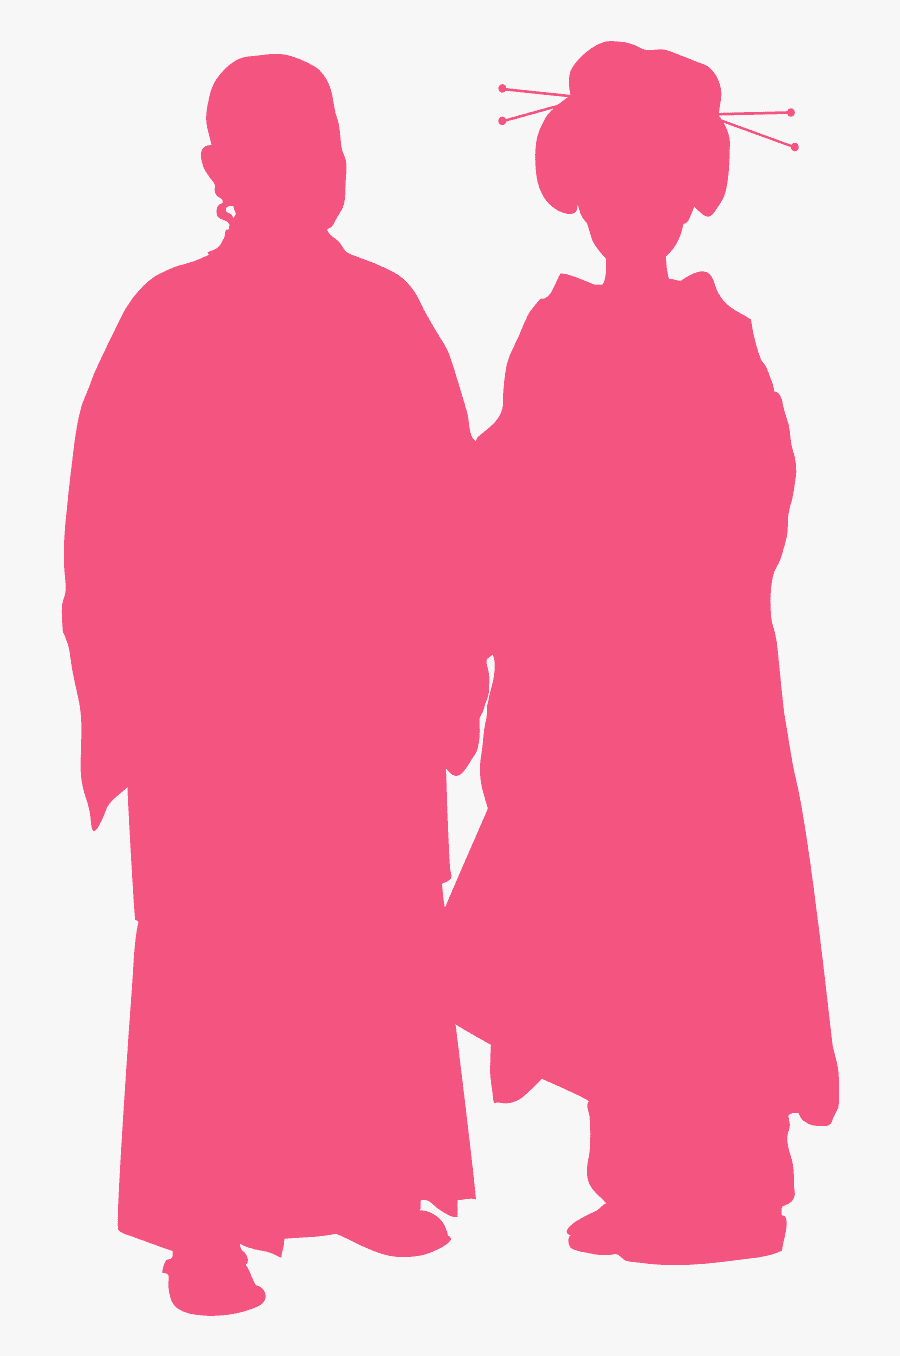 Traditional Clothing Silhouette Outline, Transparent Clipart